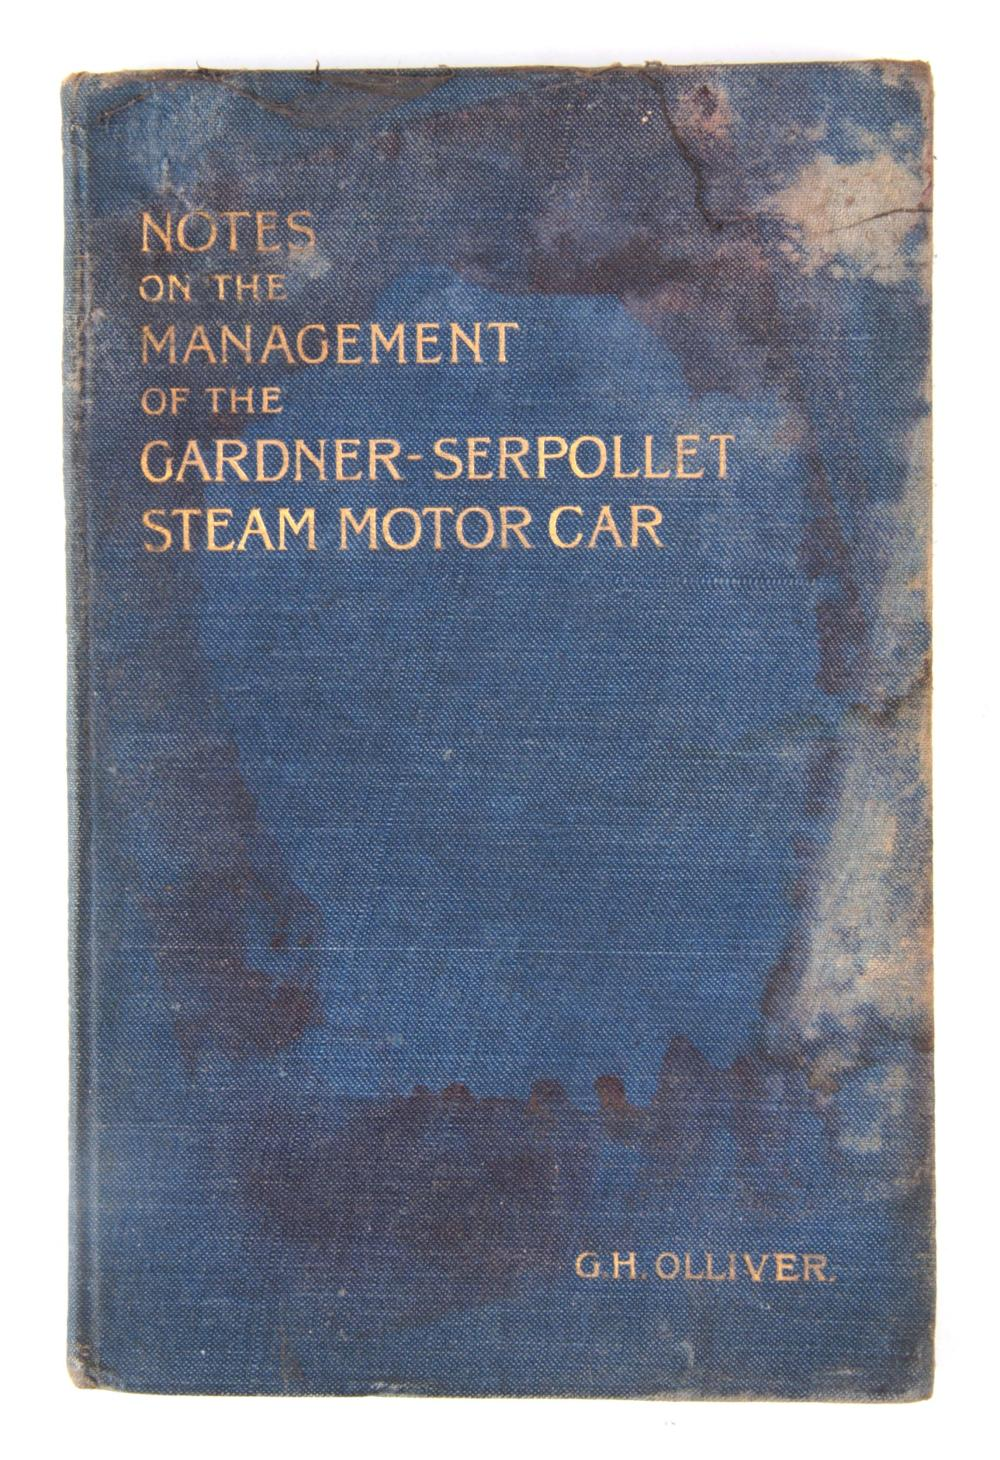 A RARE BOOK, NOTES ON THE MANAGEMENT OF THE GARDNE